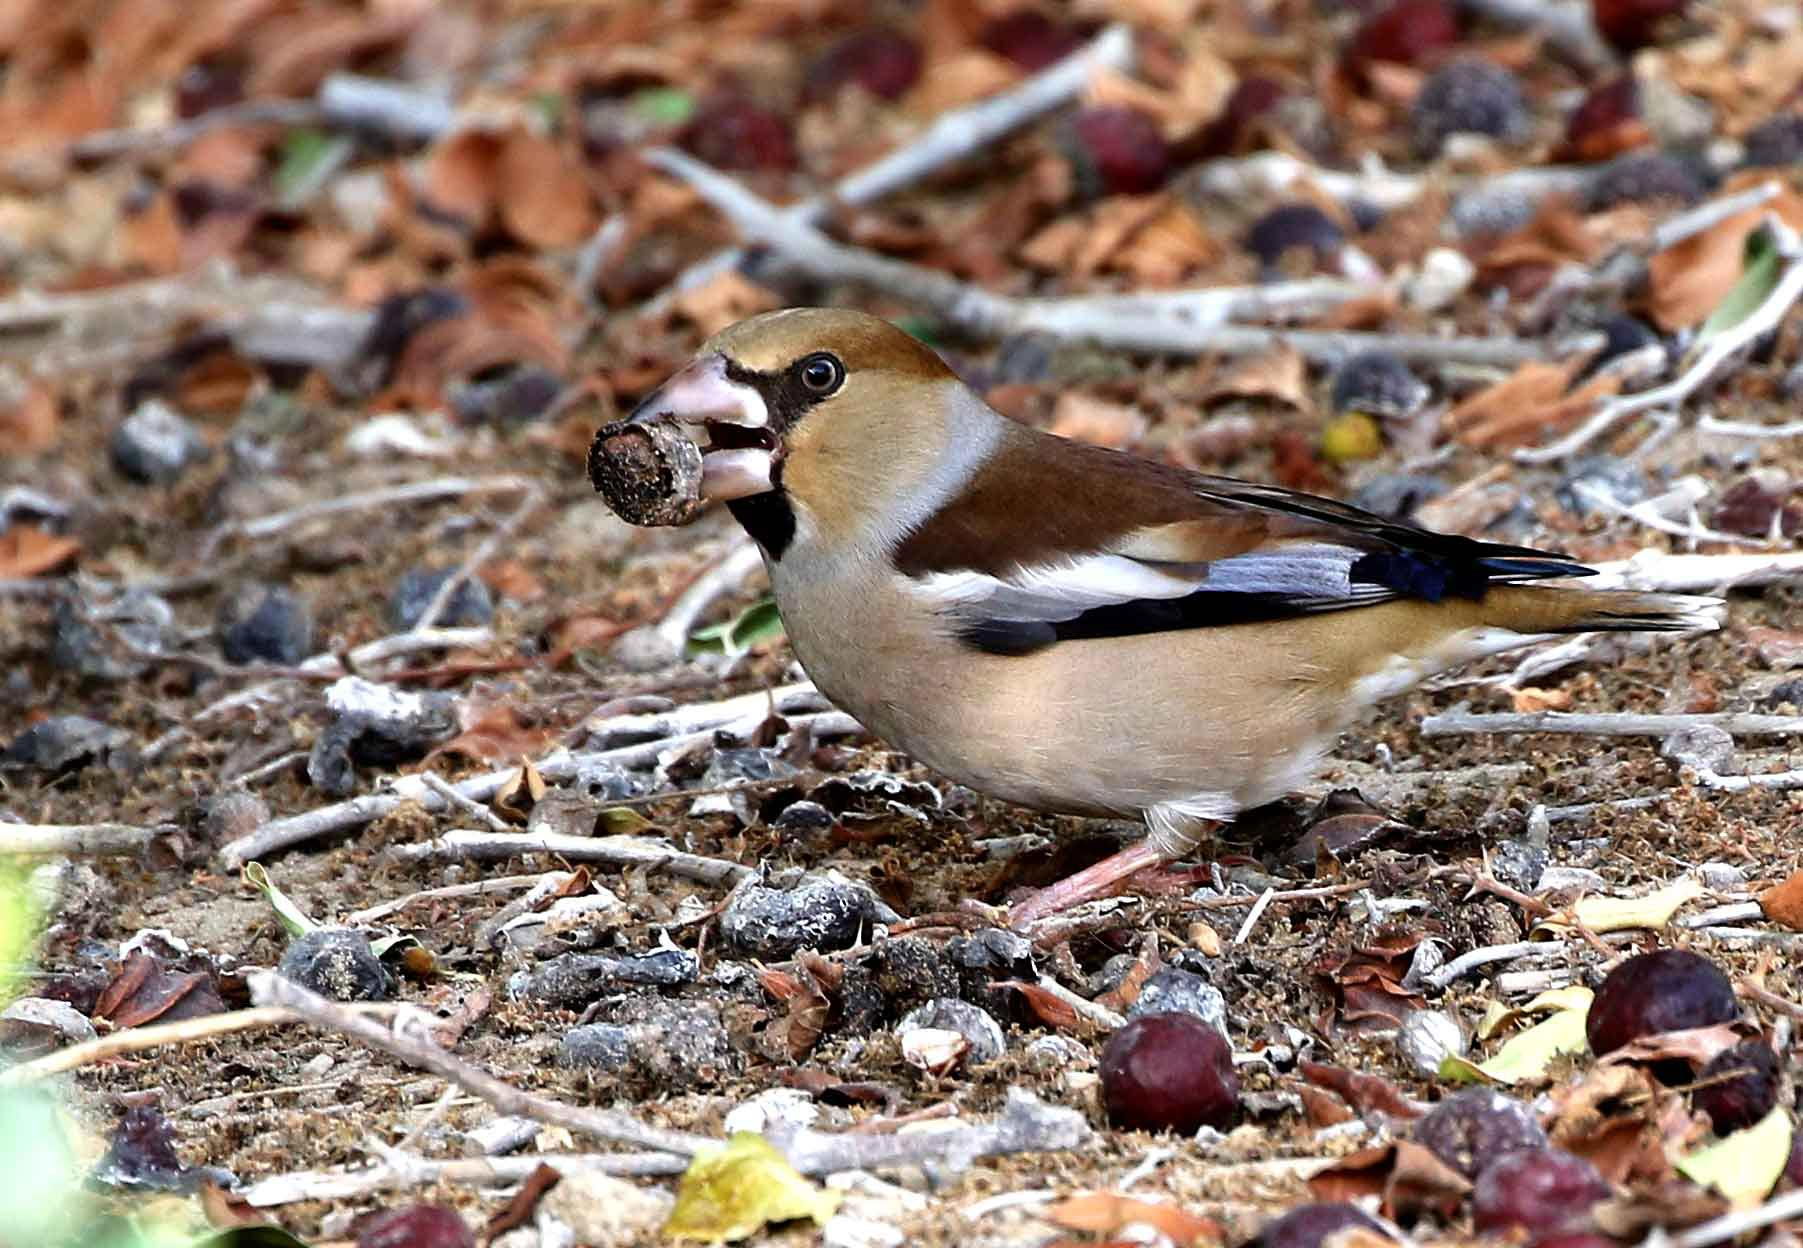 Hawfinch feeding Ziziphus Spina-christi fruit